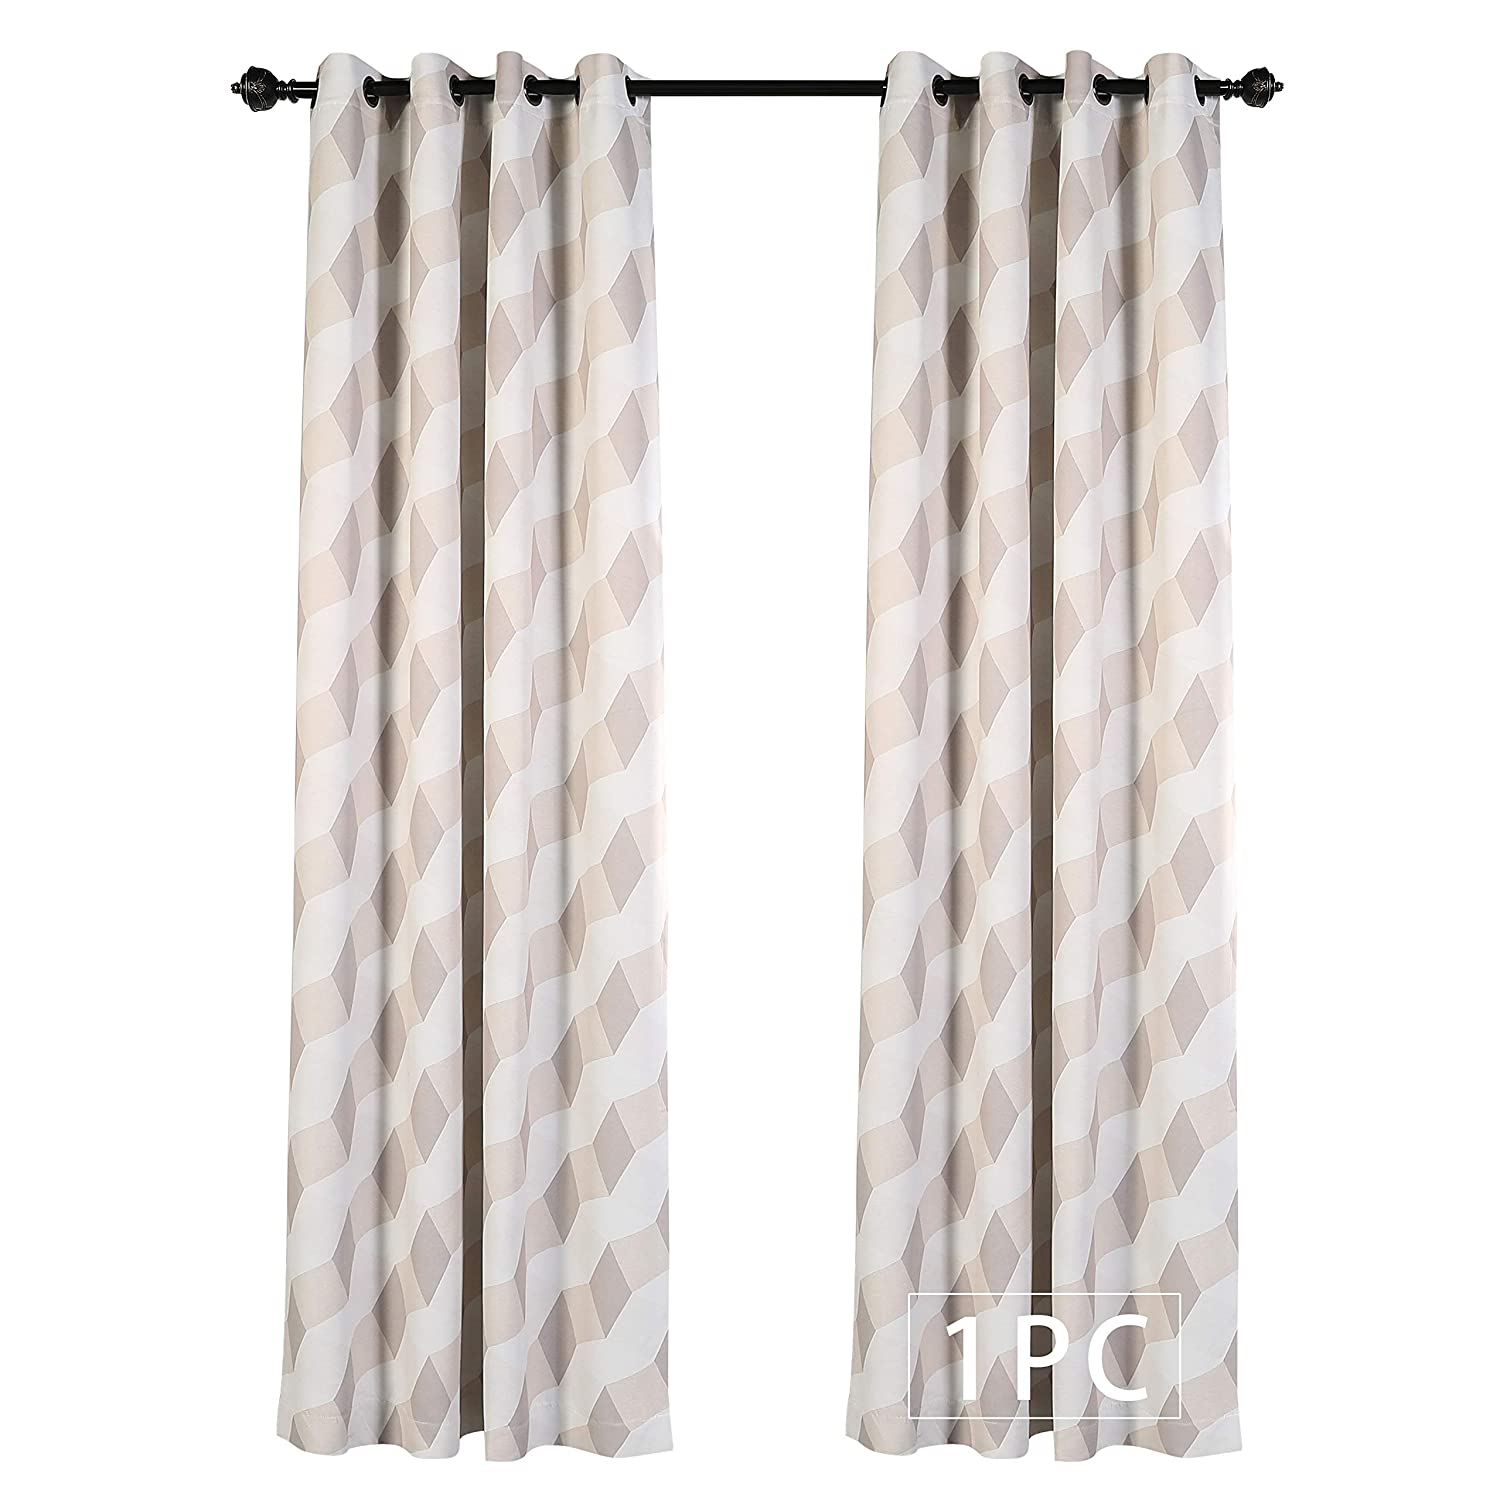 Buy Mysky Home 3d Geometry Fashion Design Print Thermal Insulated Blackout Curtain With Grommet Top For Living Room 52 By 84 Inch Beige 1 Panel Online At Low Prices In India Amazon In